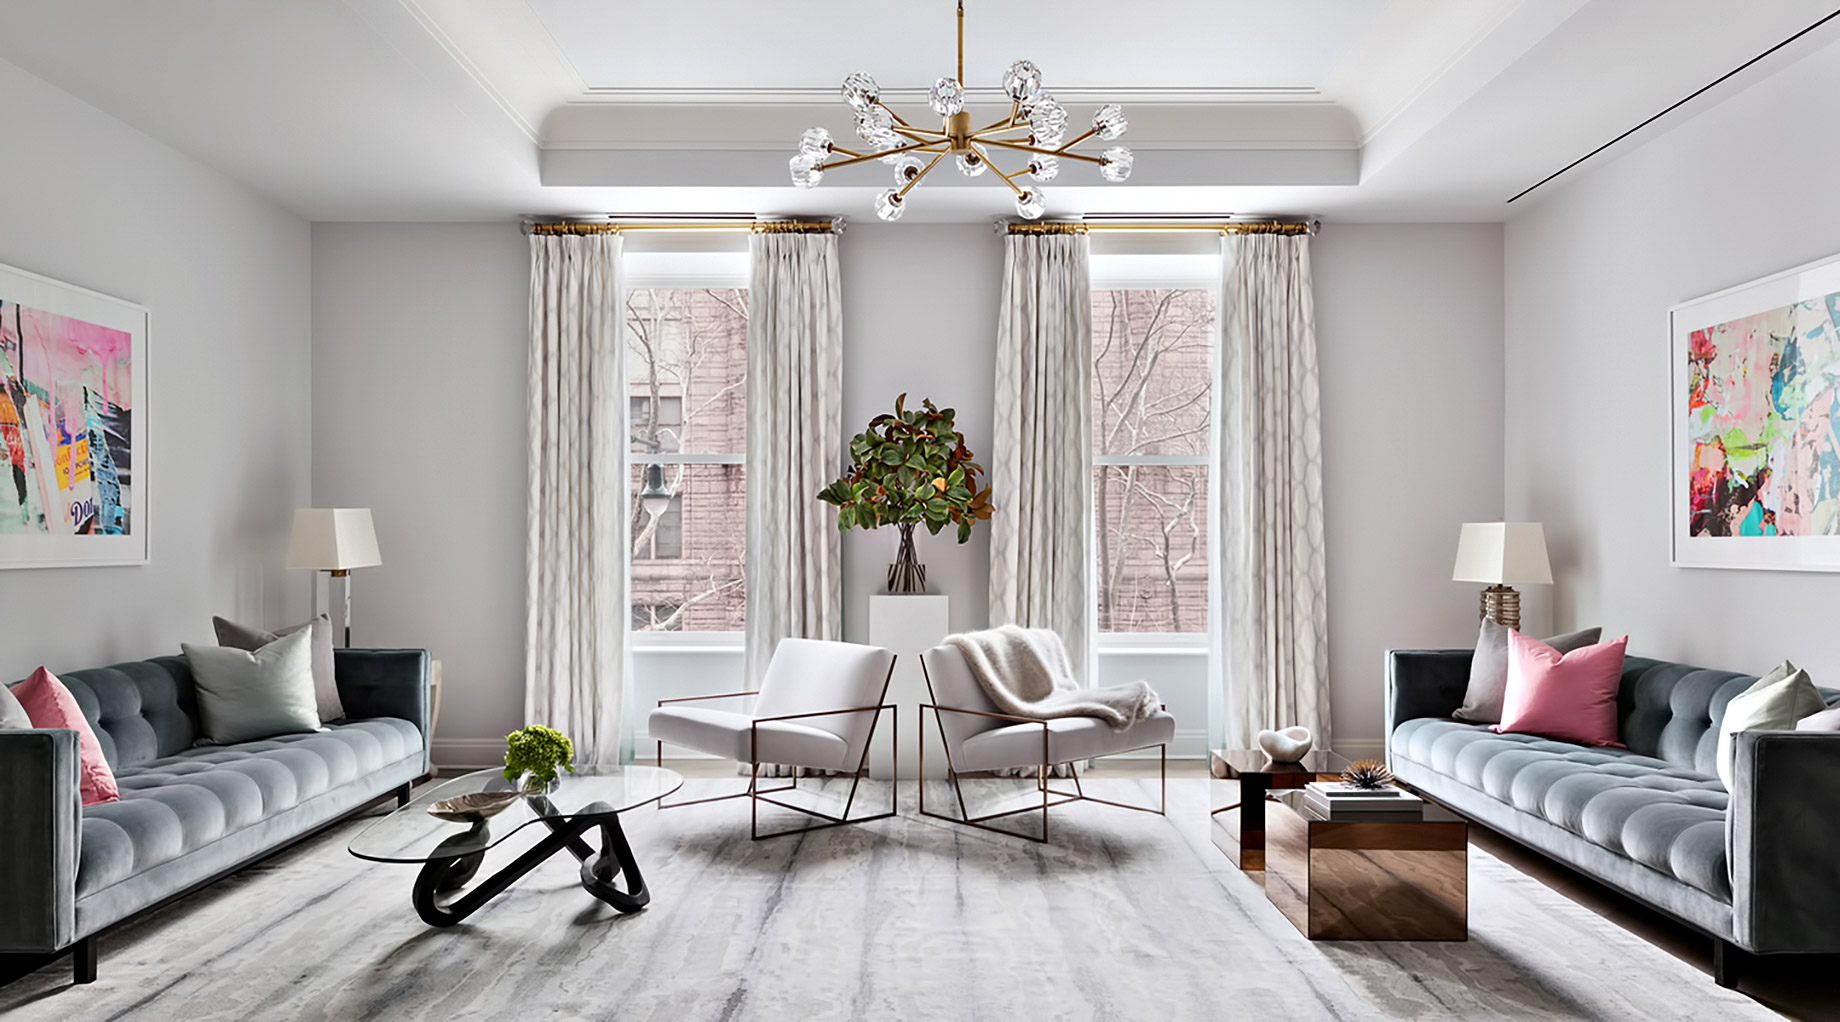 101 West 78th Street Luxury Condo Aparments - 101 W 78th St, New York, NY, USA